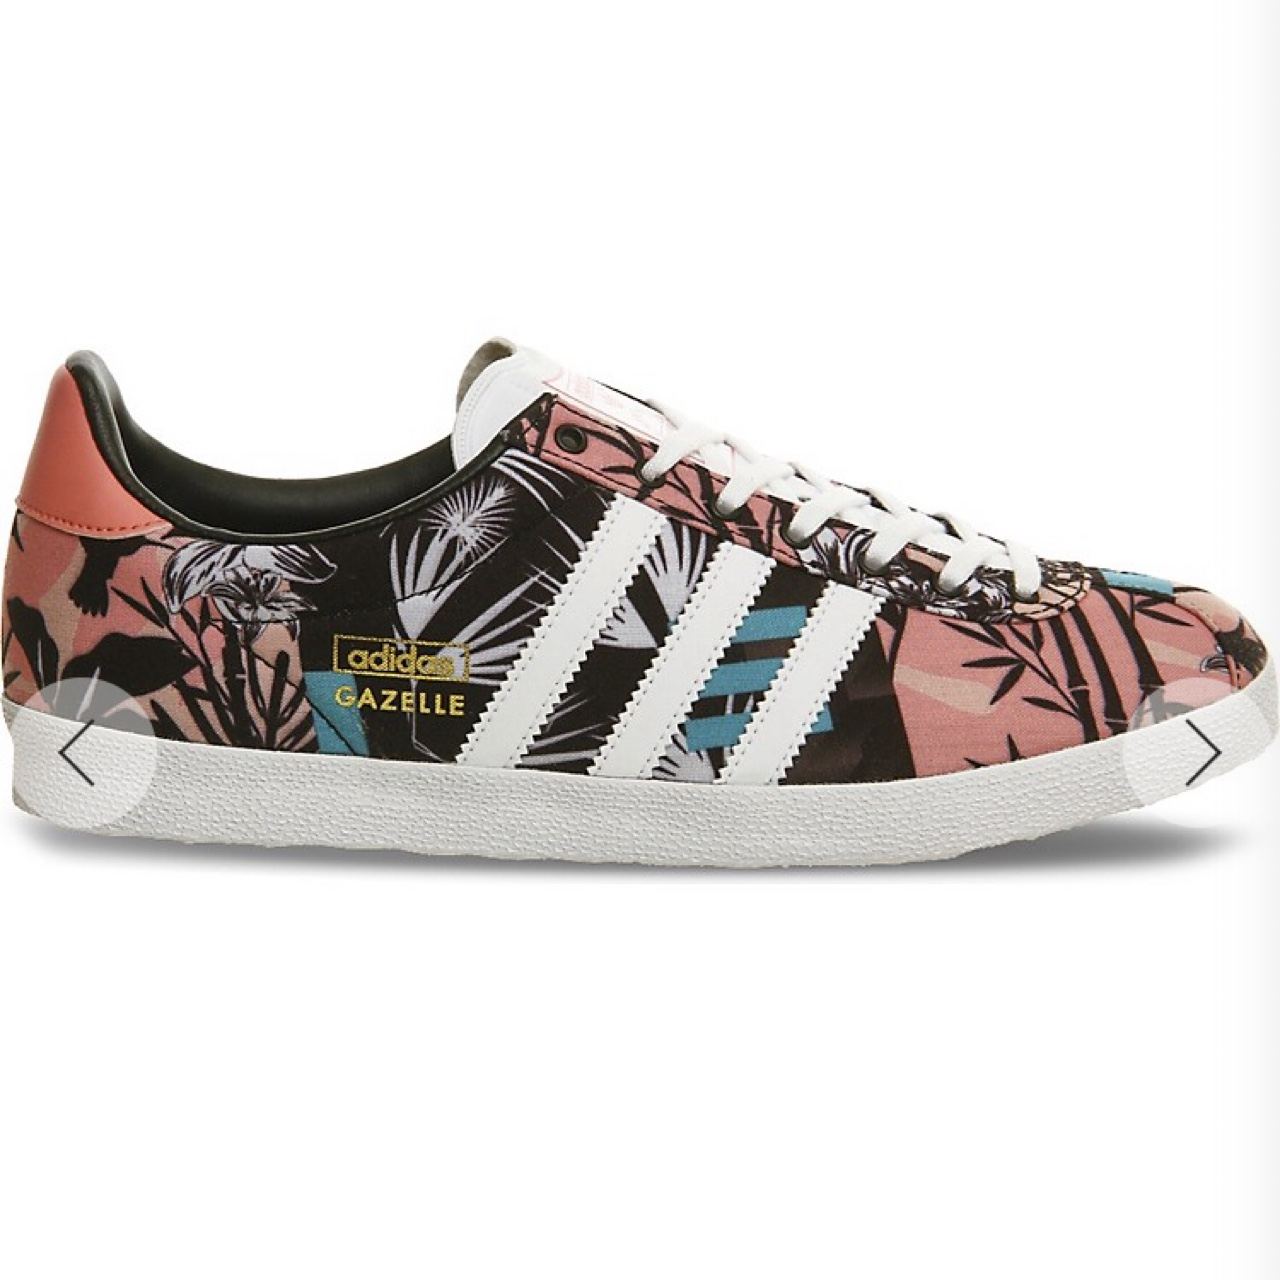 Cool floral shoes limited edition from Adidas | Sapatos para